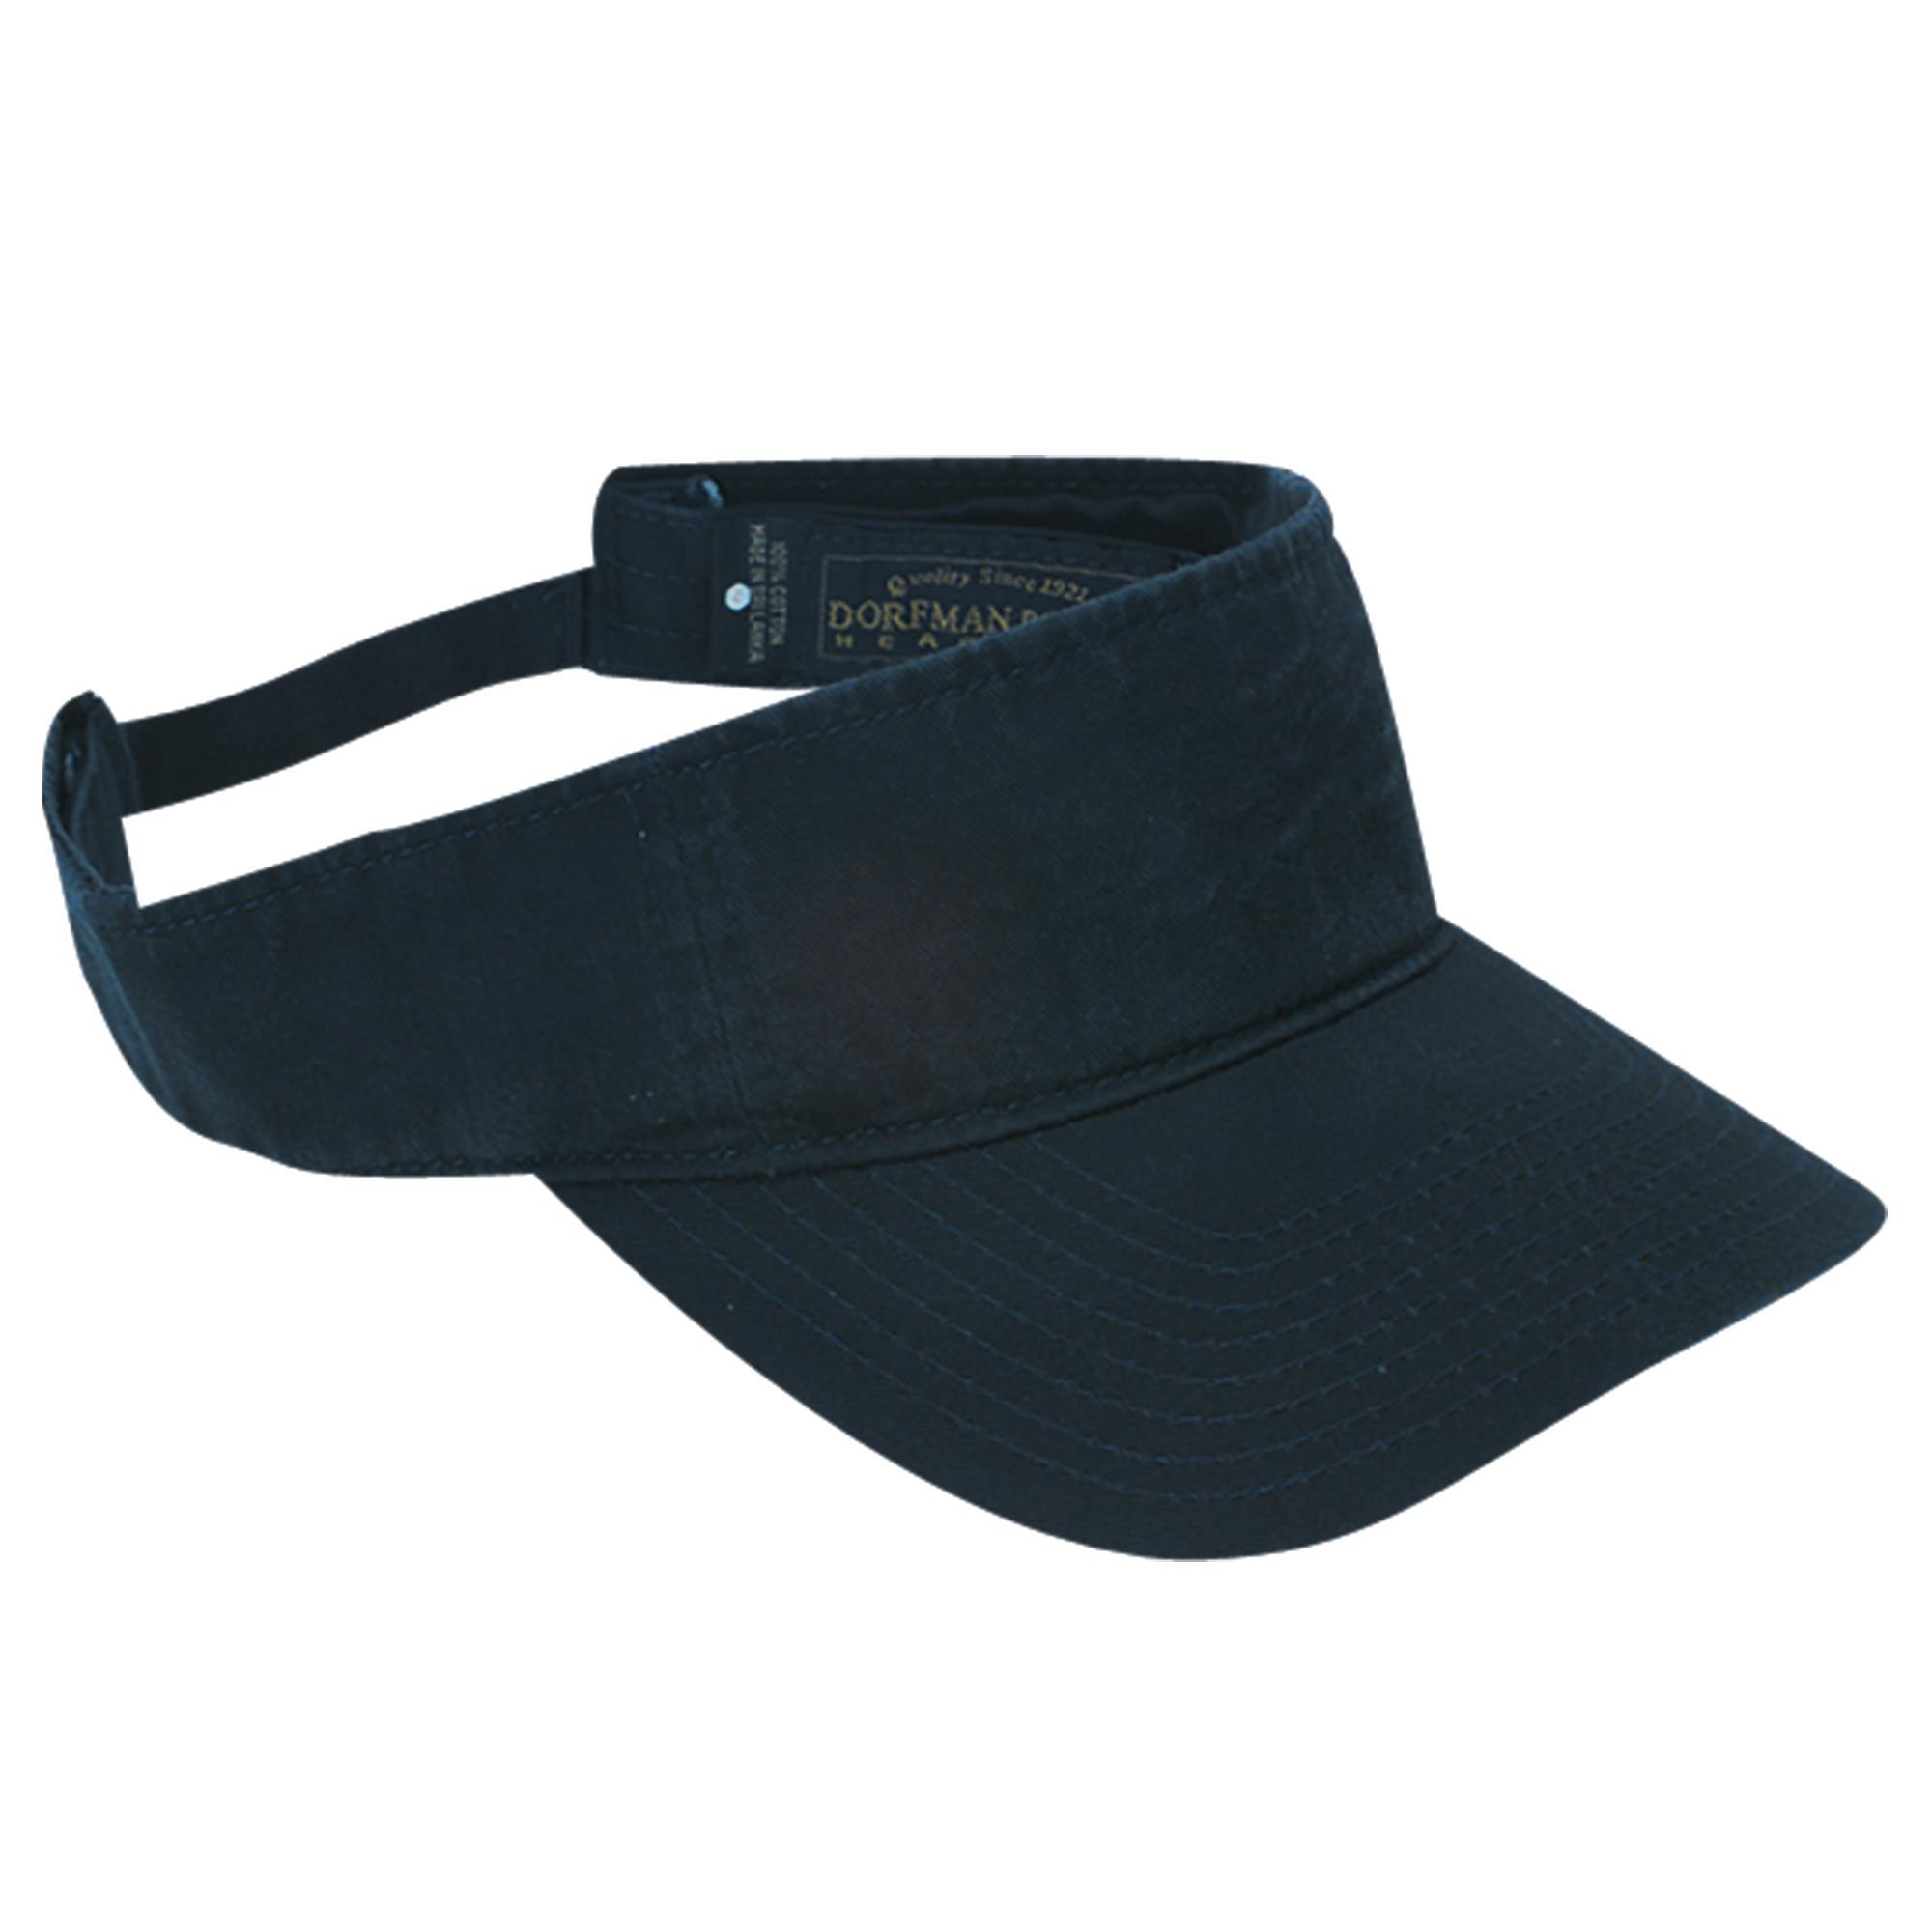 DPC_Outdoor_Design_Cotton_Washed_Twill_Visor_Cap_with_Hook_and_Loop